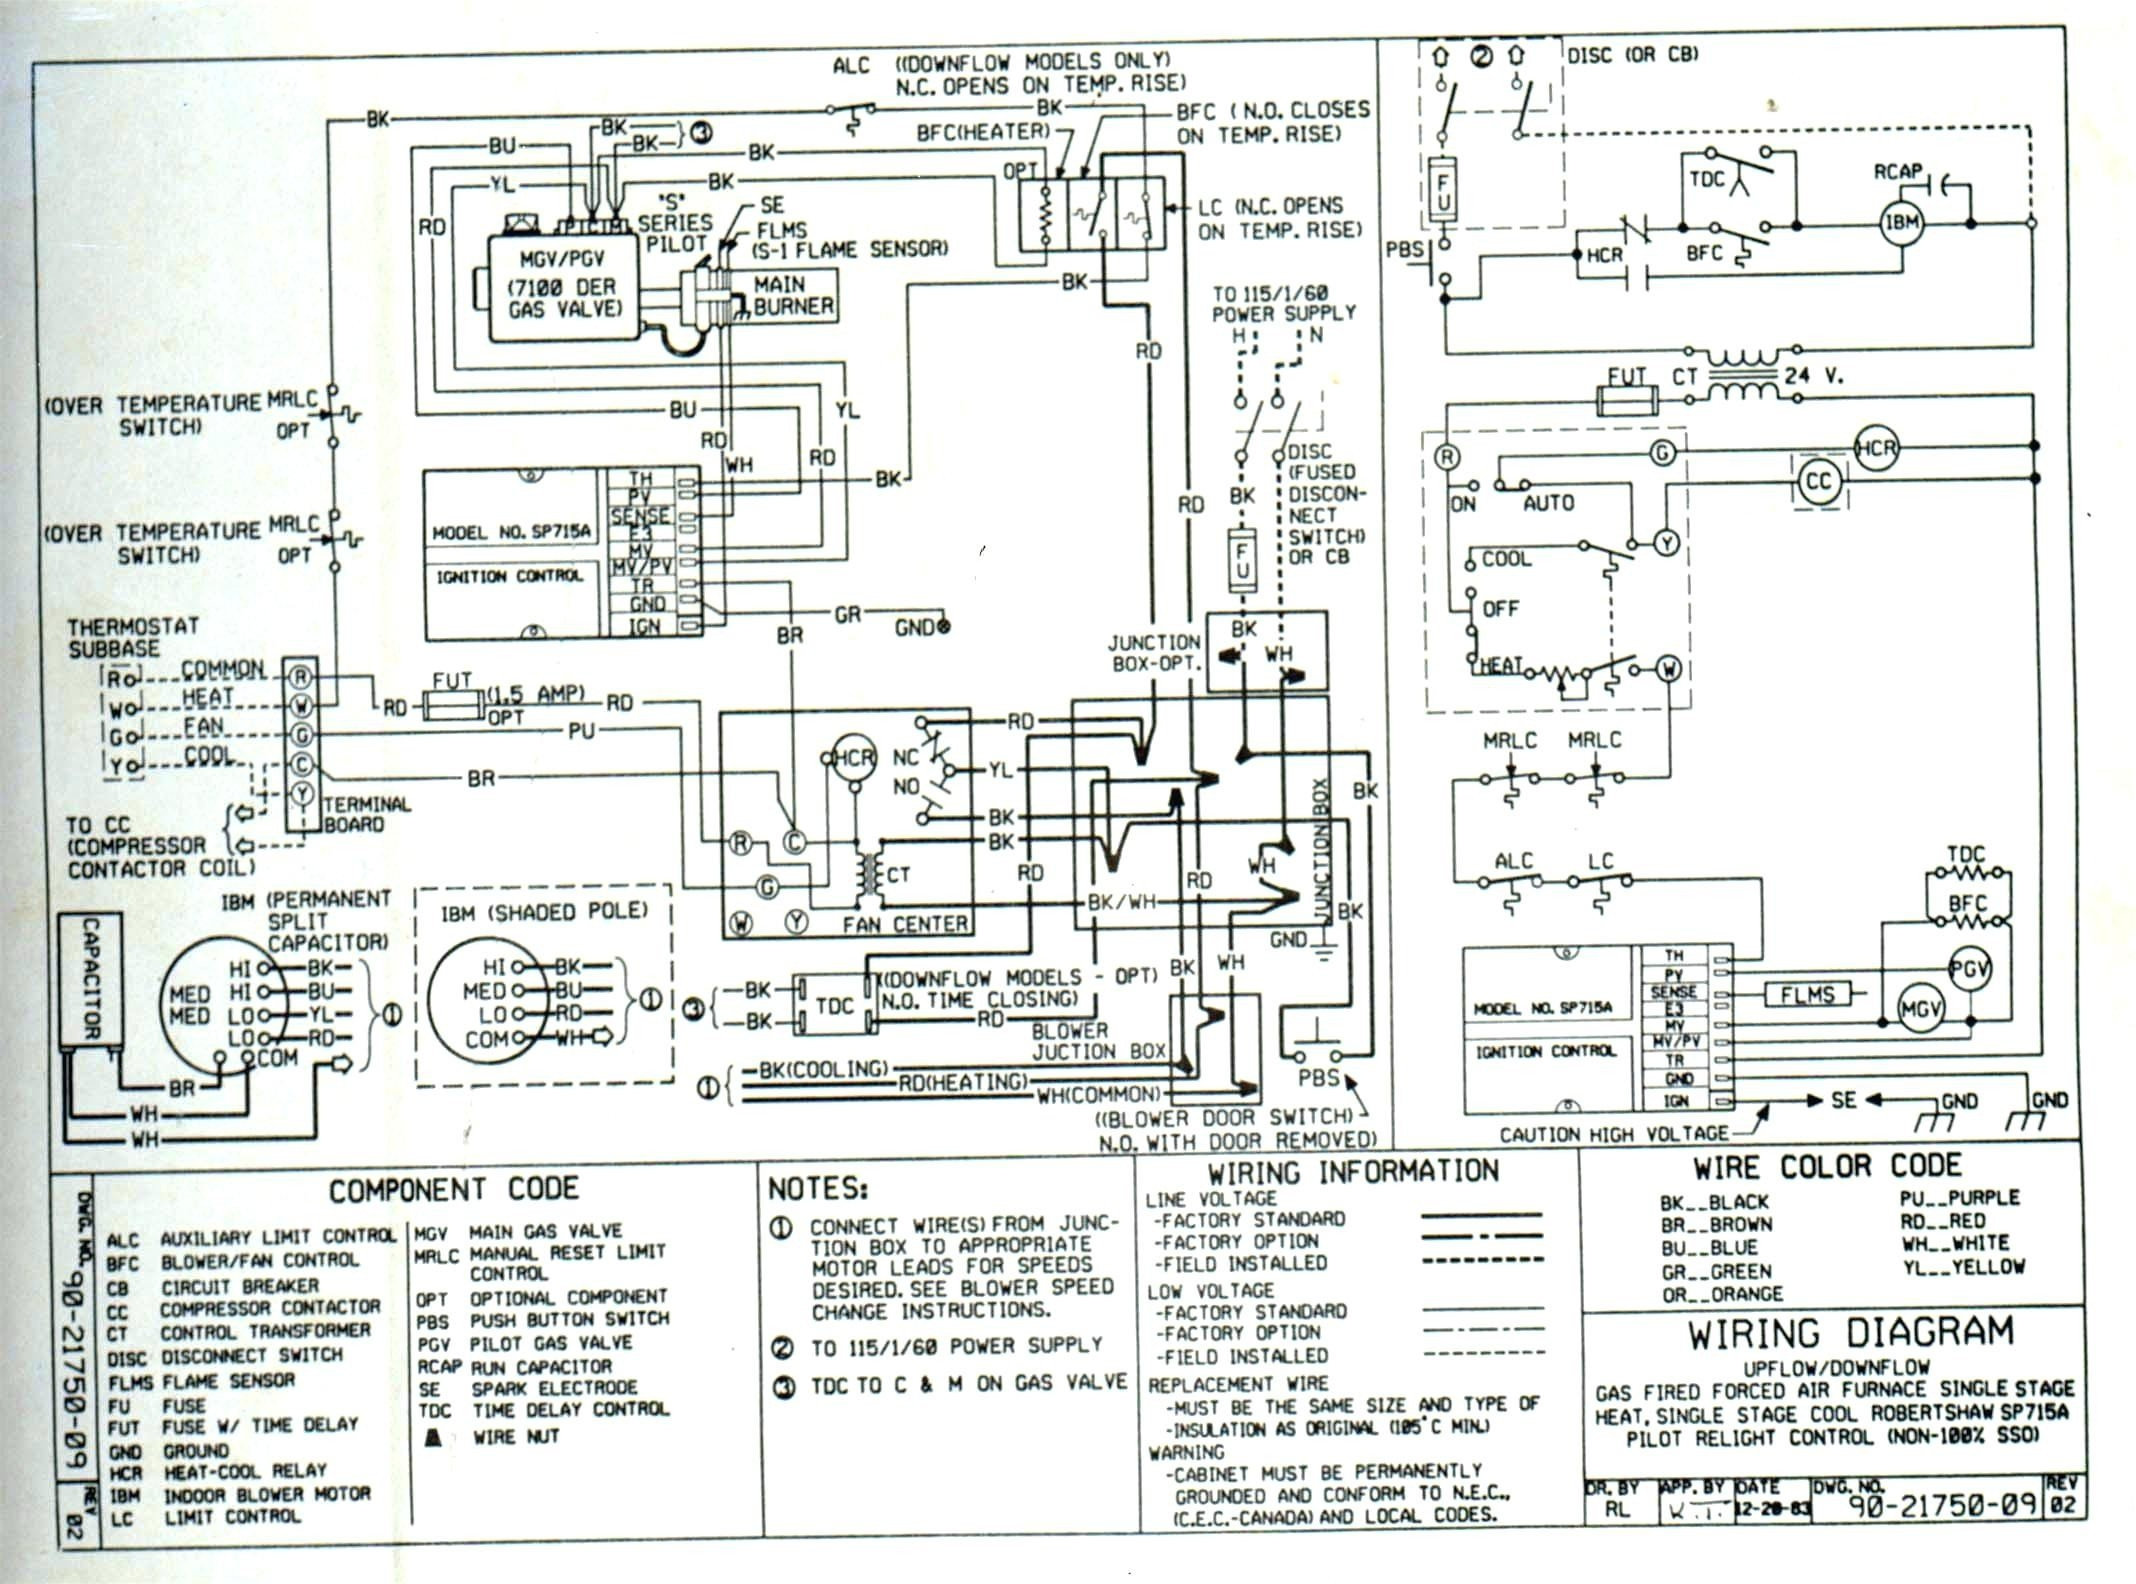 Wiring Diagram 1997 Honda Xr80 Excellent Electrical For 1992 Civic Trane Manual Guide U2022 Rh Lancairforum Com 1999